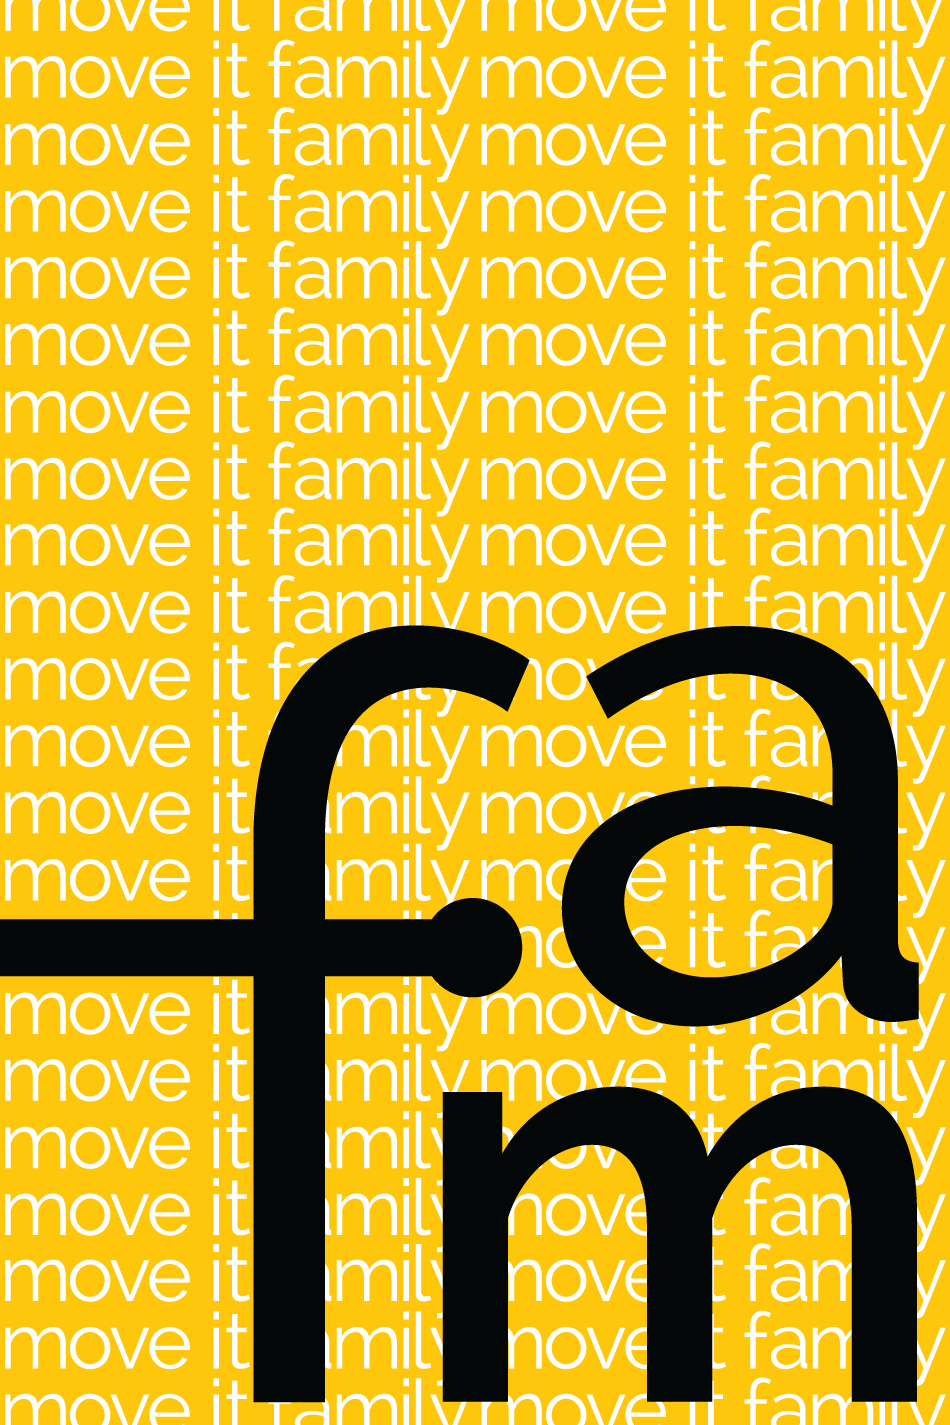 Move it Studio Barre Fitness Lancaster Pennsylvania Ballet Studio Lititz Family typography